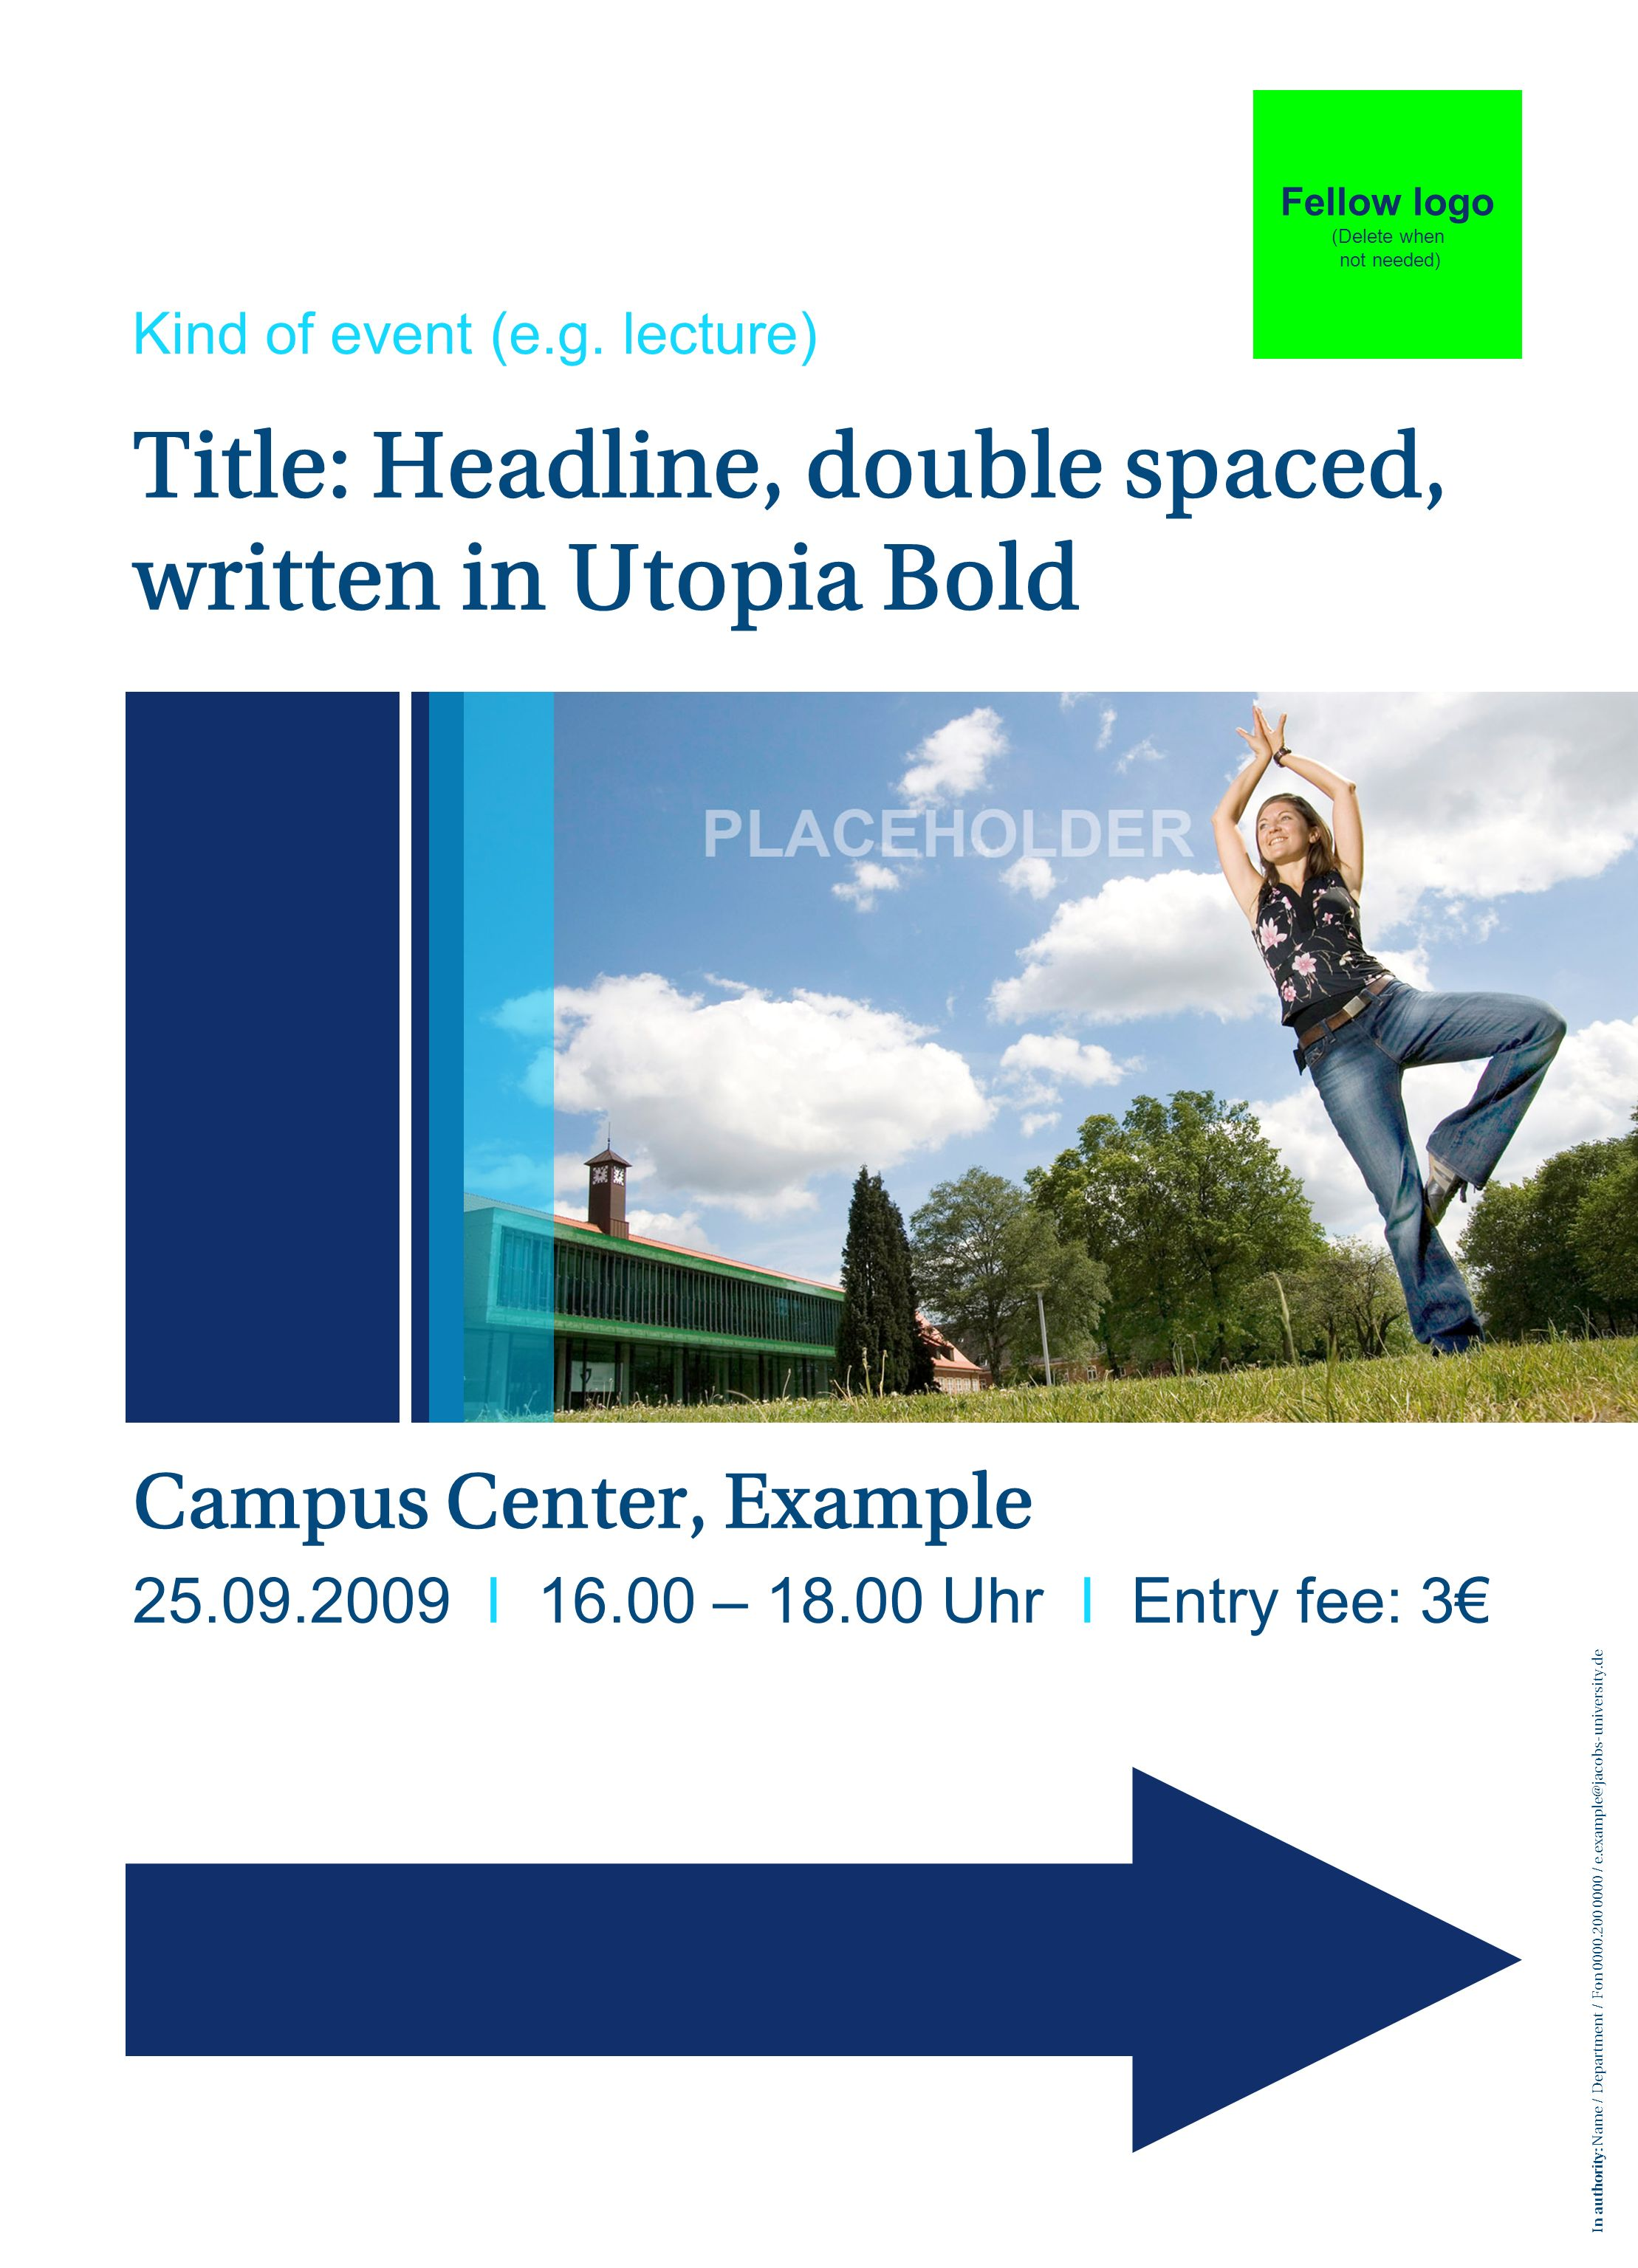 In authority: Name / Department / Fon 0000.200 0000 / e.example@jacobs-university.de Title: Headline, double spaced, written in Utopia Bold Fellow log